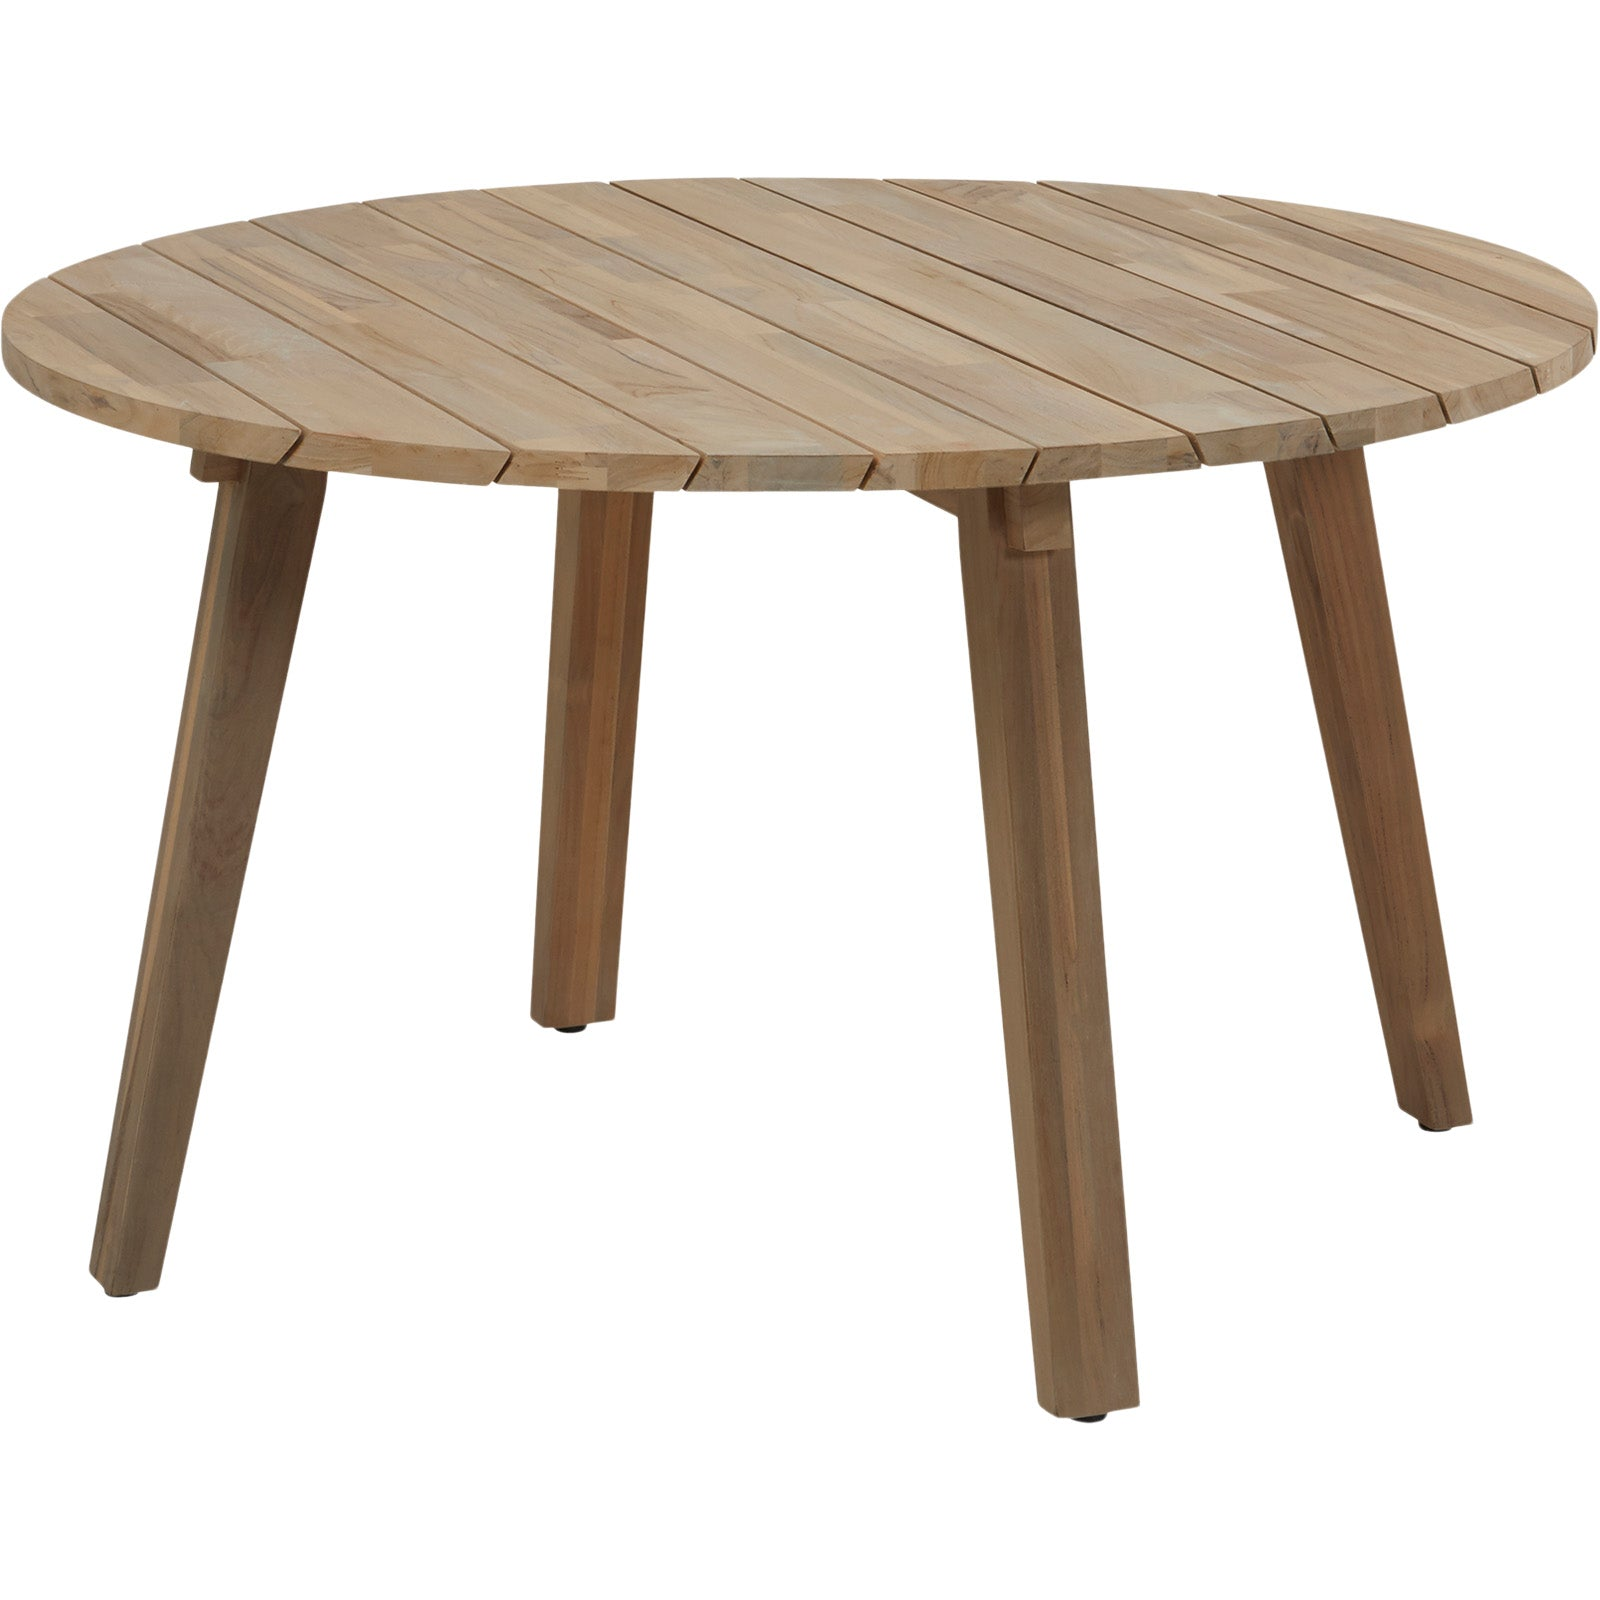 Kew Teak Round Table Set